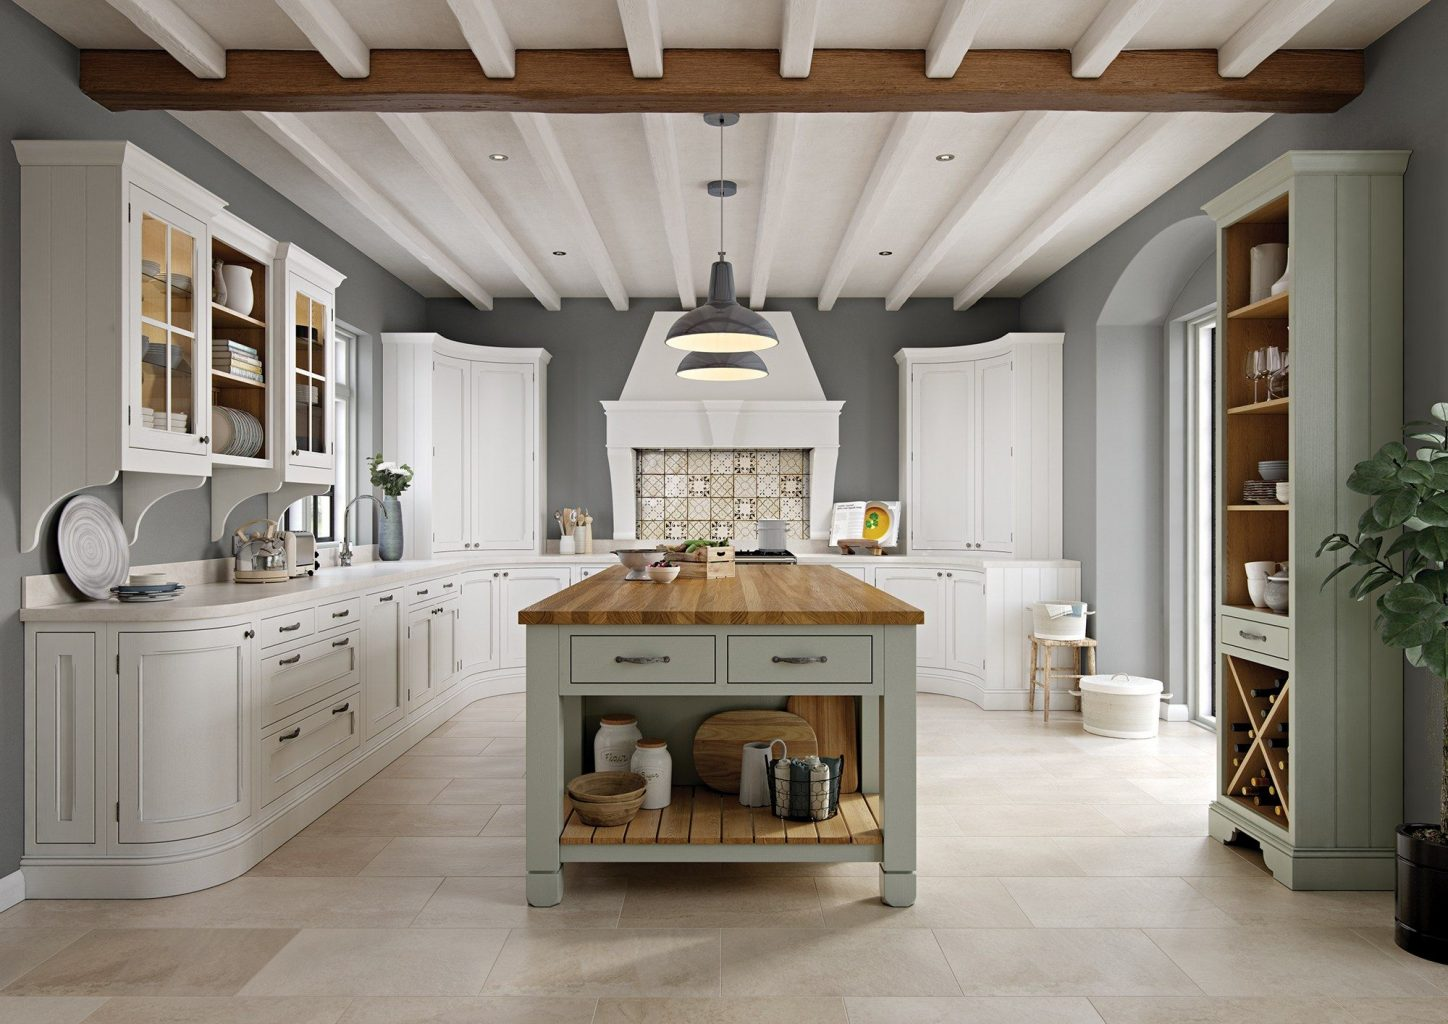 cuisines design Cannes, made to measure kitchen in Cannes